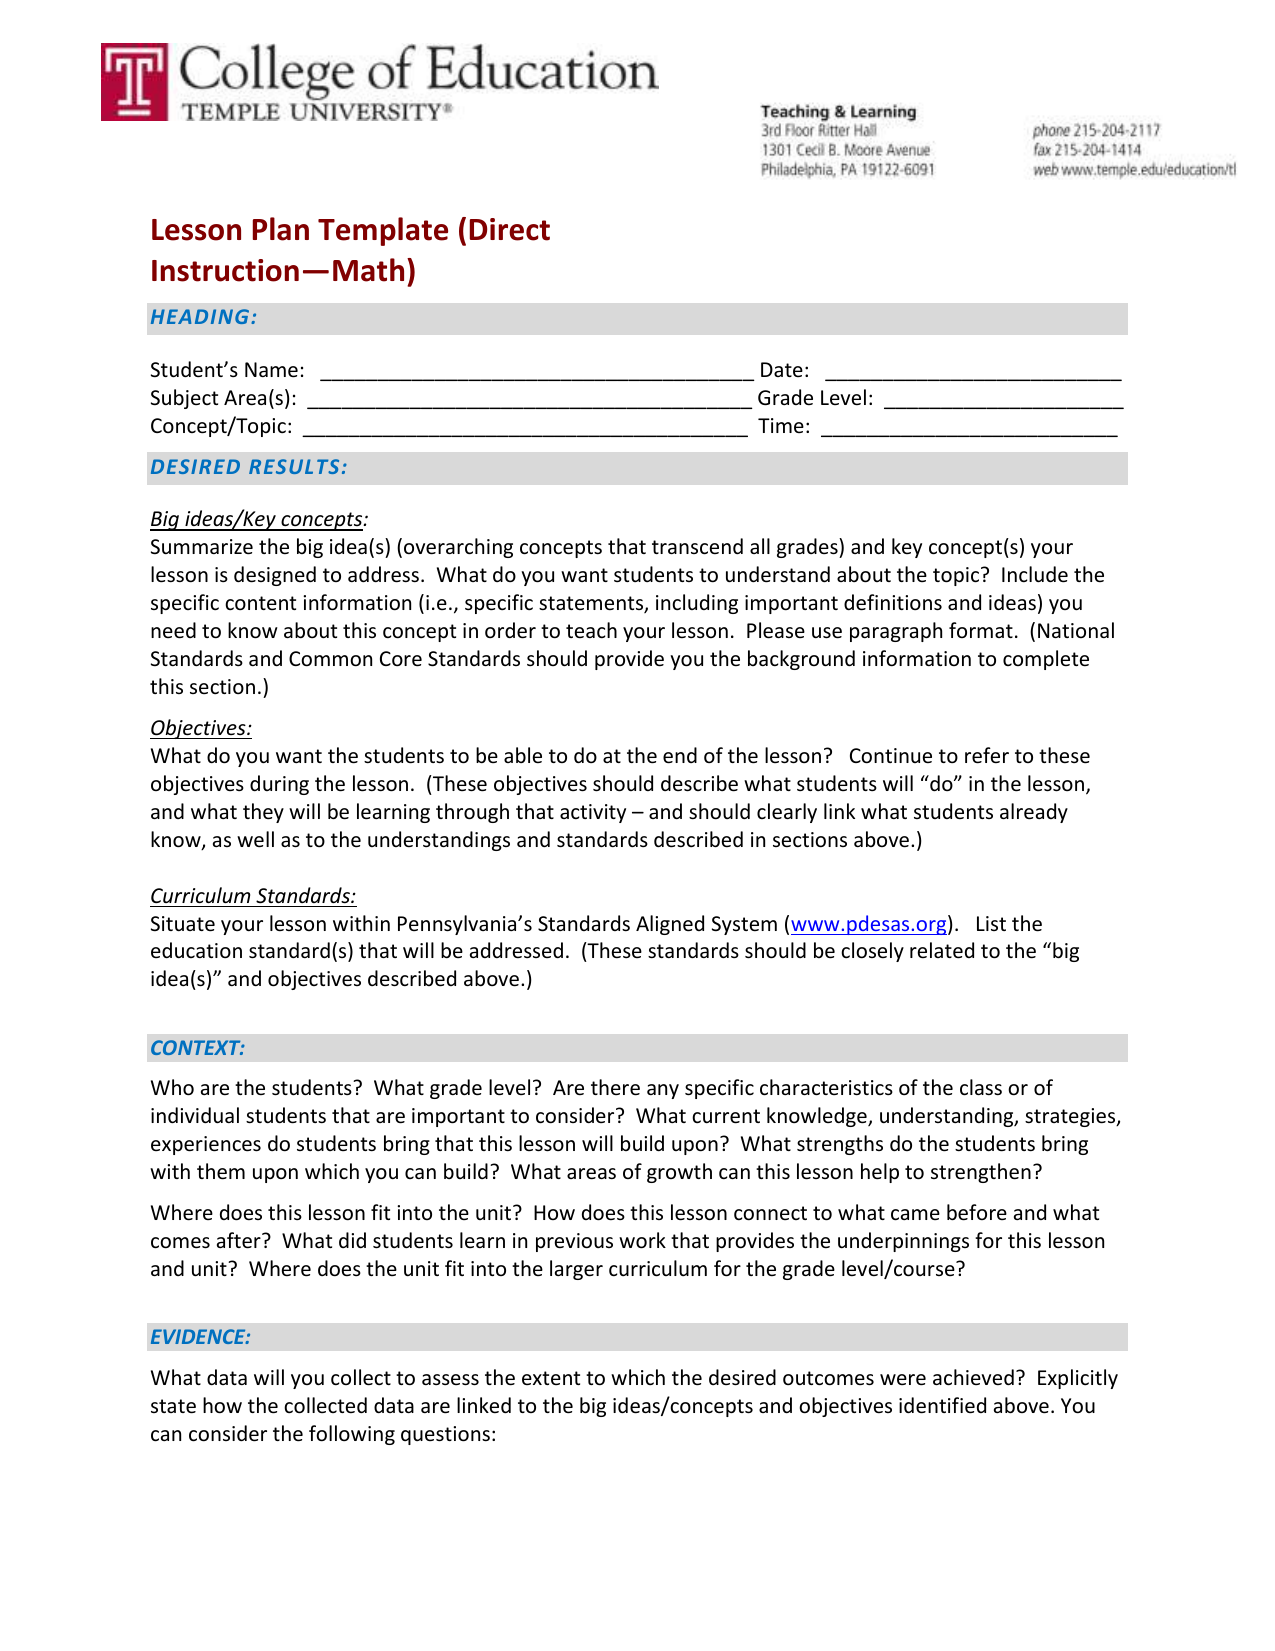 Lesson Plan Template Direct Instruction Math